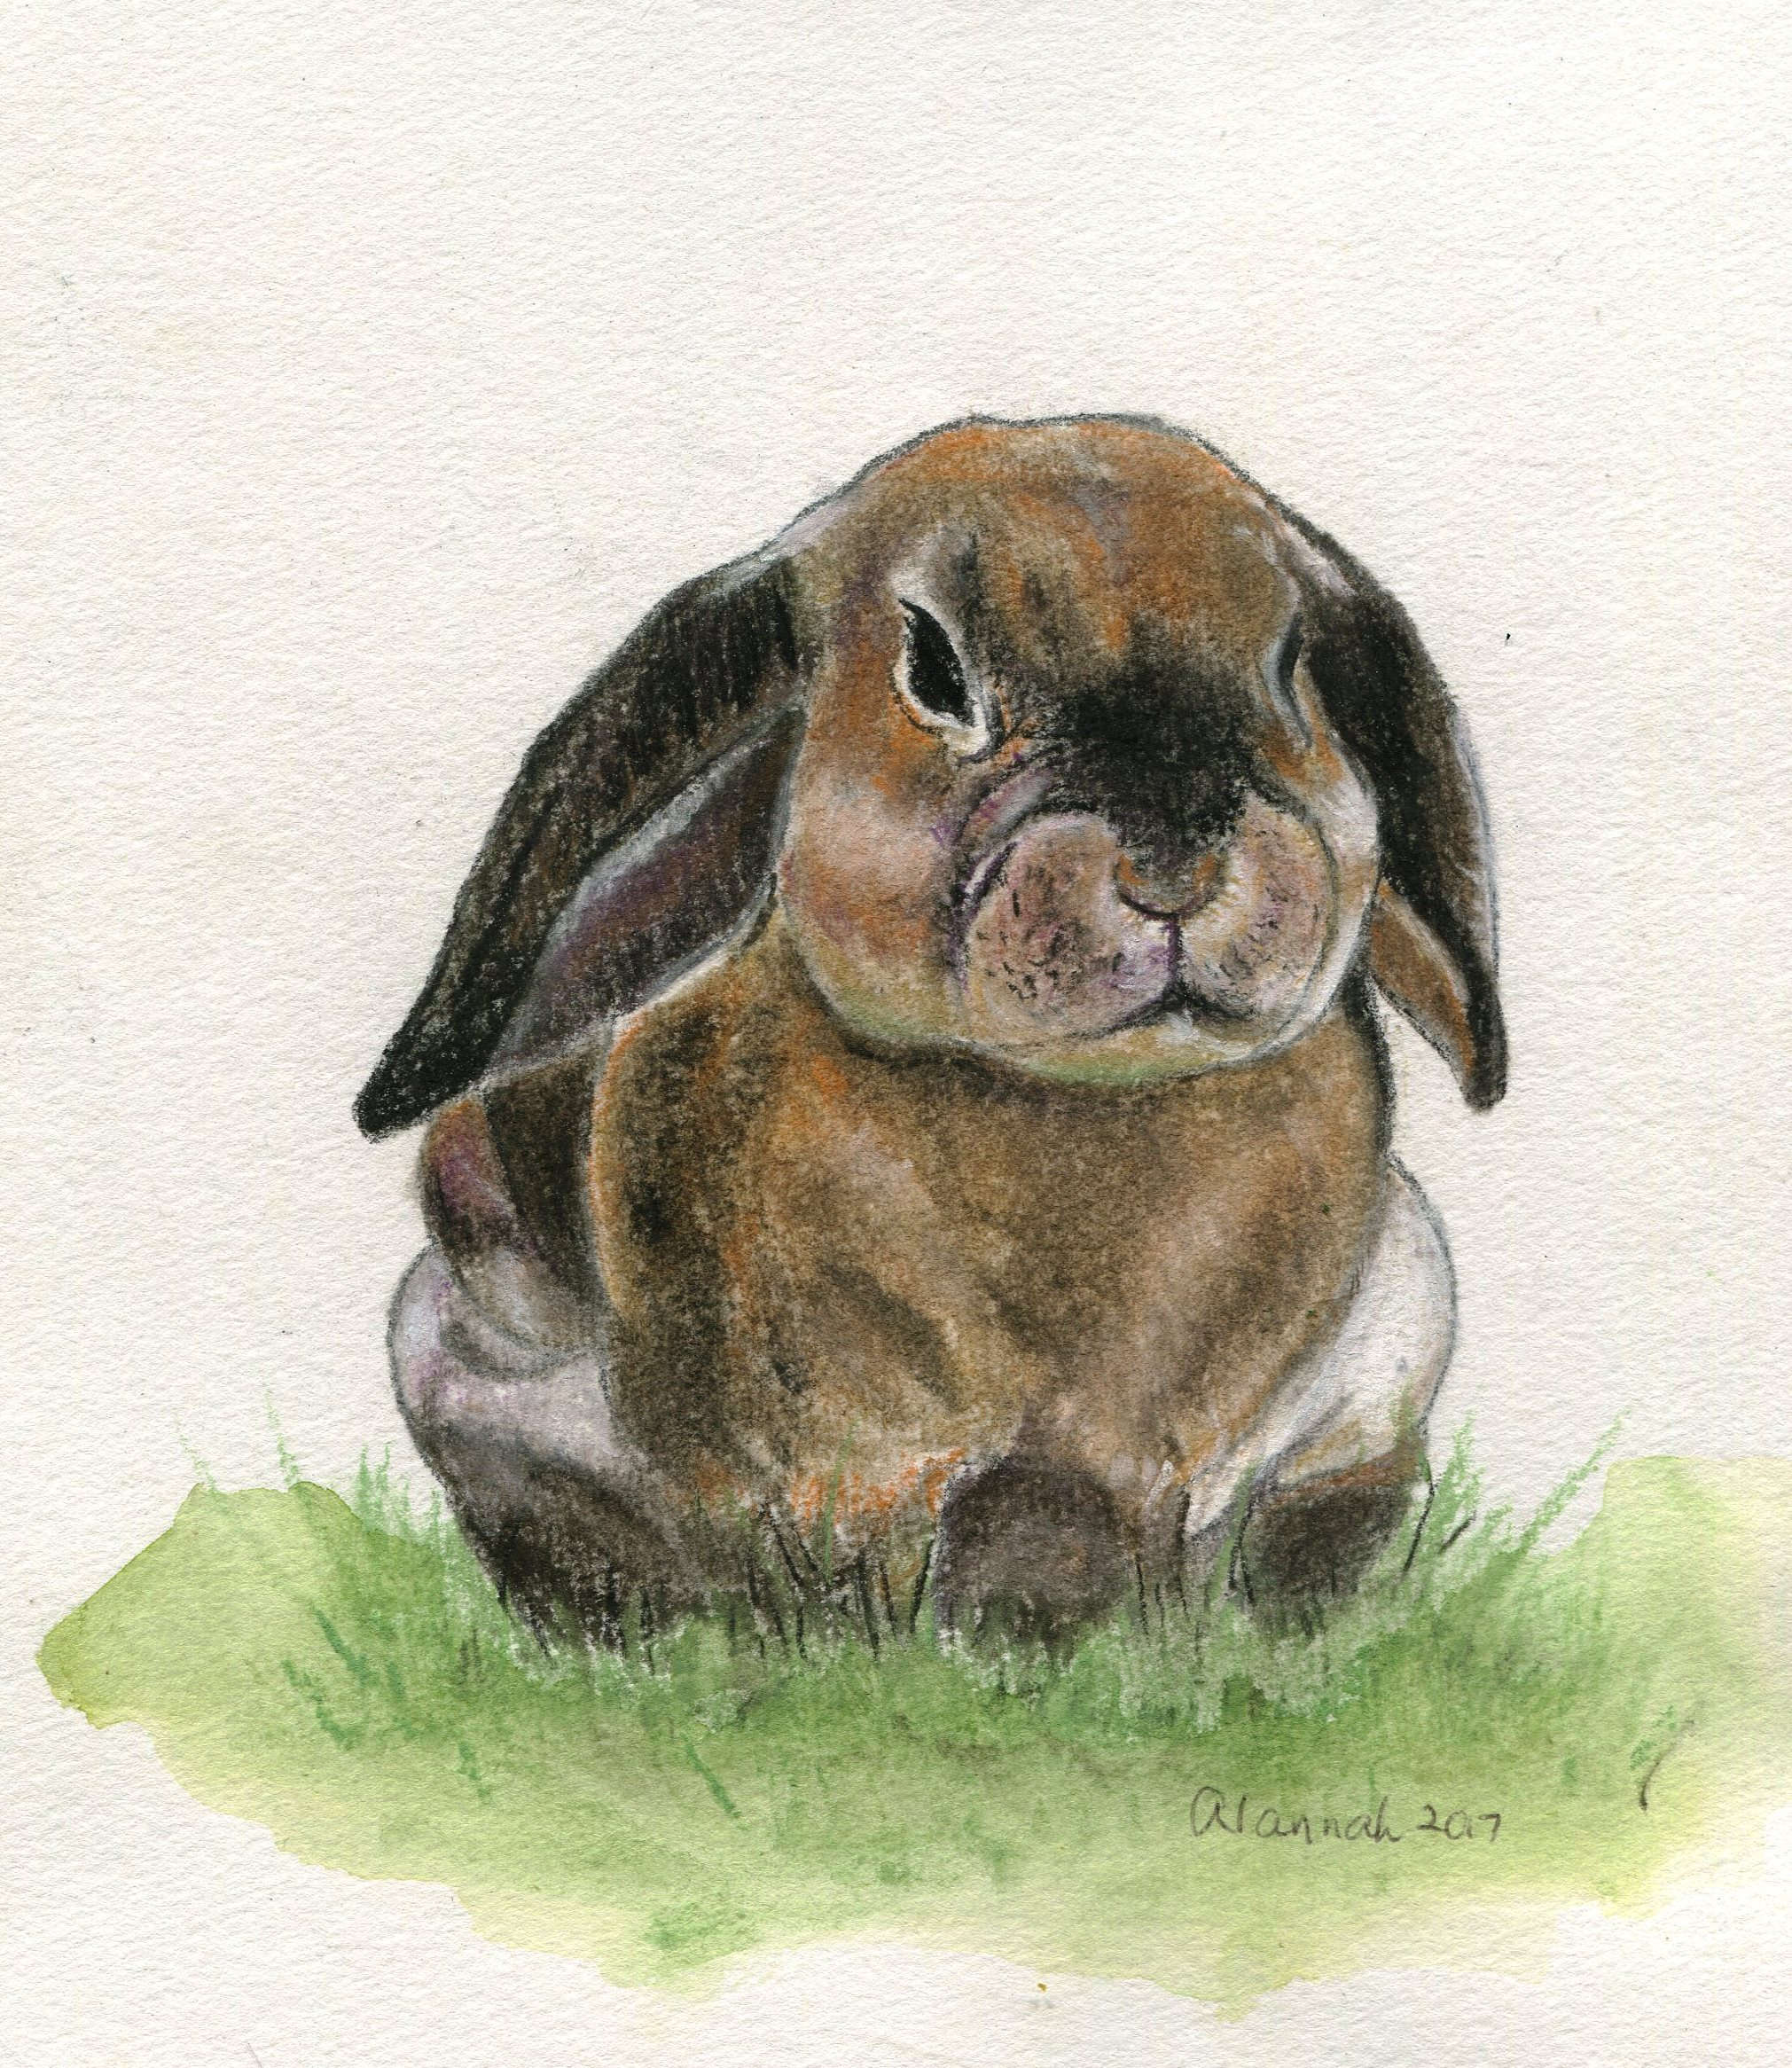 68A ALANNAH VALENTINE, BUNNY I, PASTEL ON PAPER